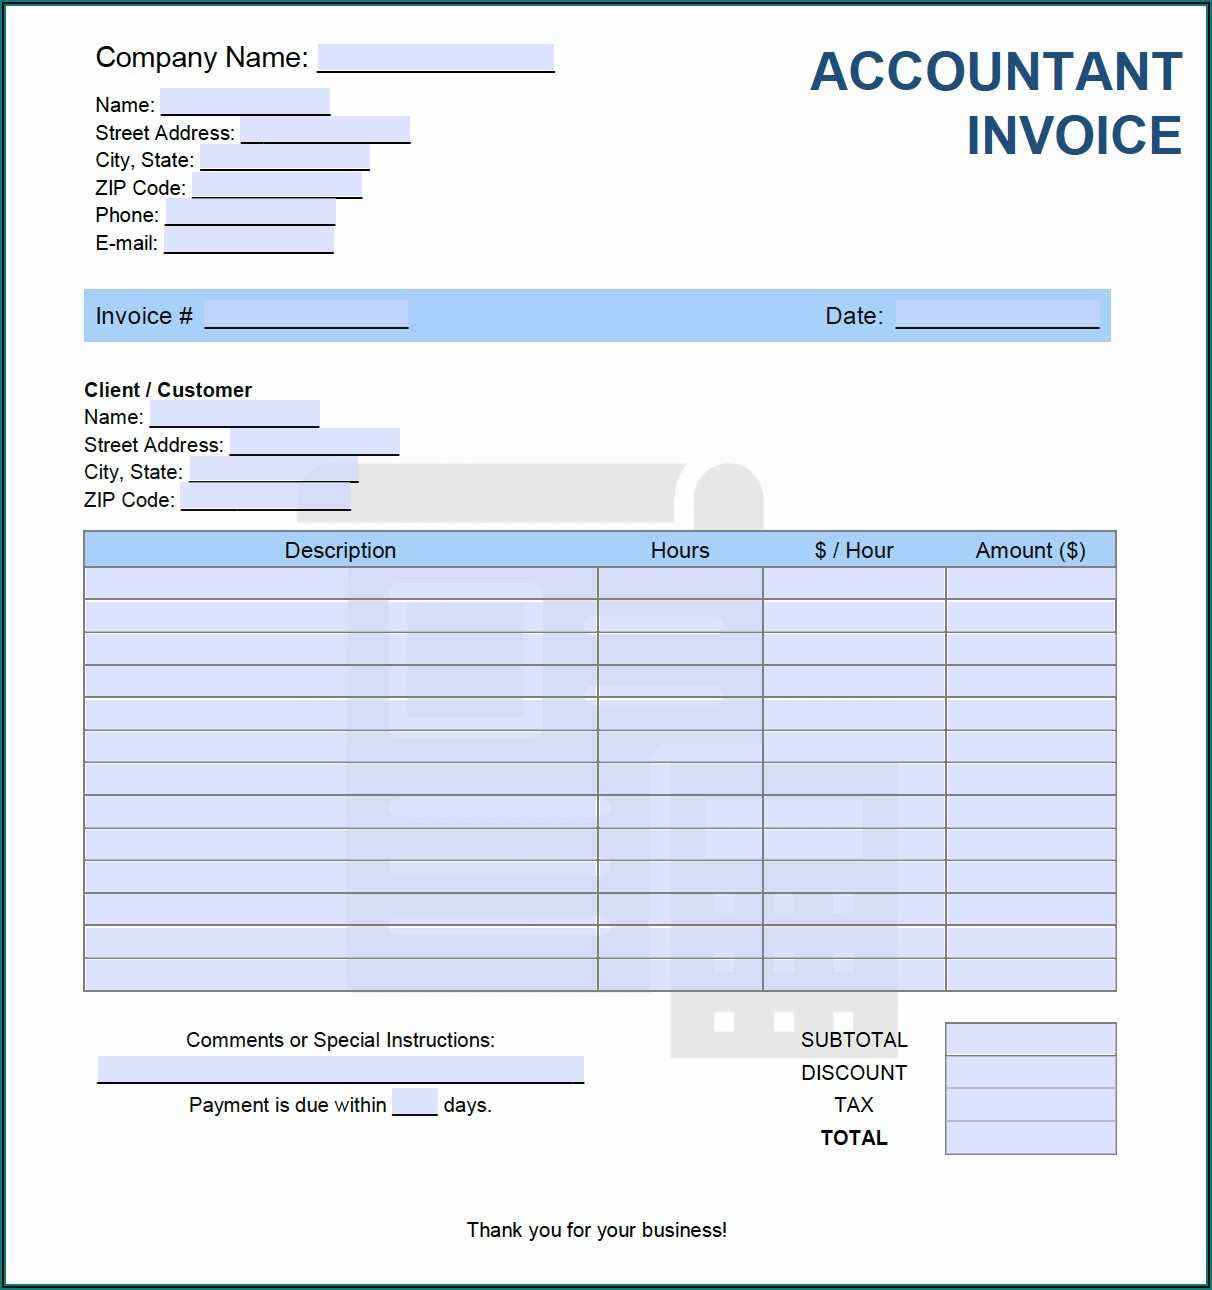 After School Care Invoice Template